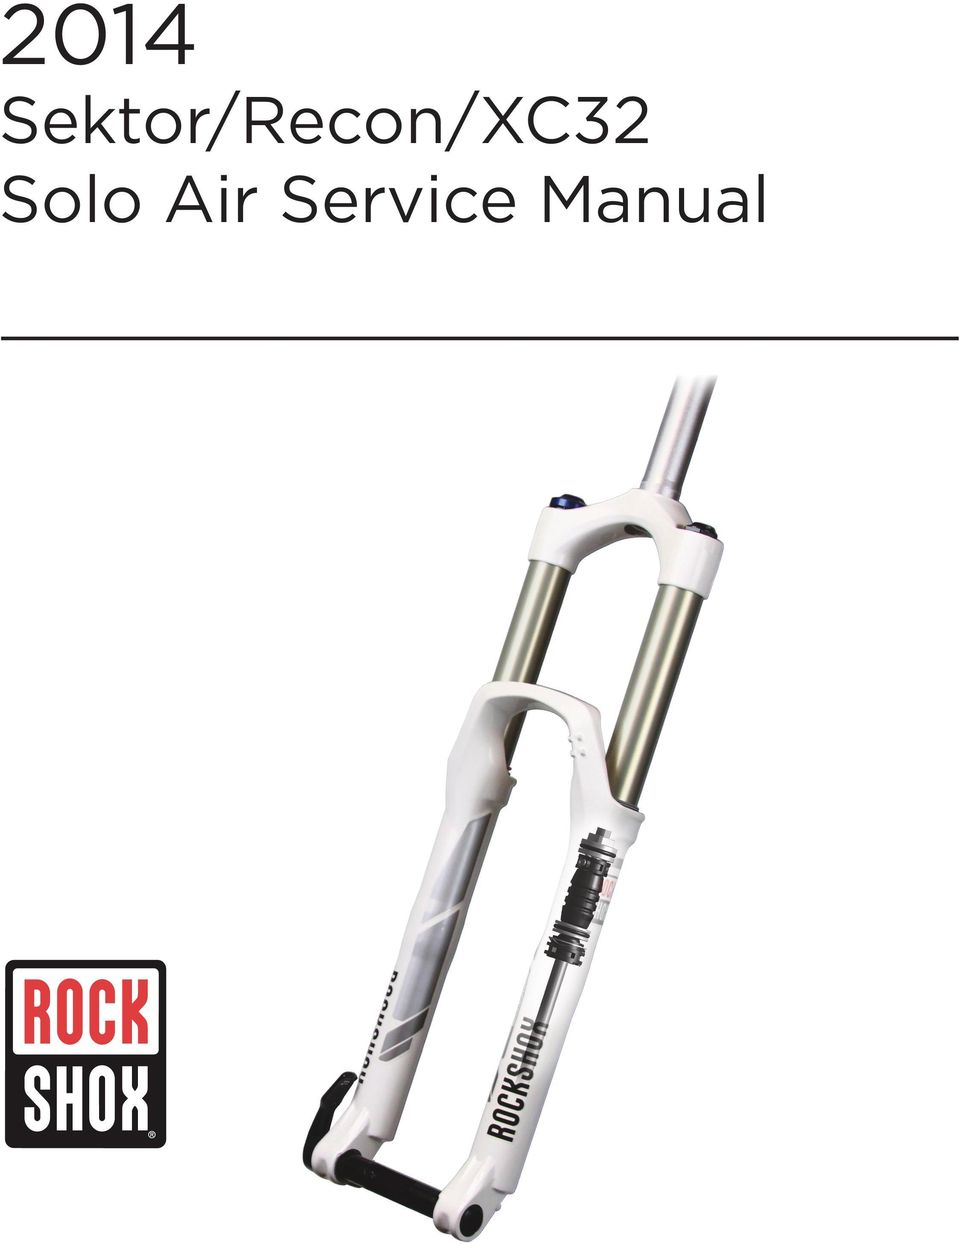 2014 Sektor Recon Xc32 Solo Air Service Manual Pdf Rock Shock Rl Gold 275 2 Sram Llc Warranty Extent Of Limited Except As Otherwise Set Forth Herein Warrants Its Products To Be Free From Defects In Materials Or